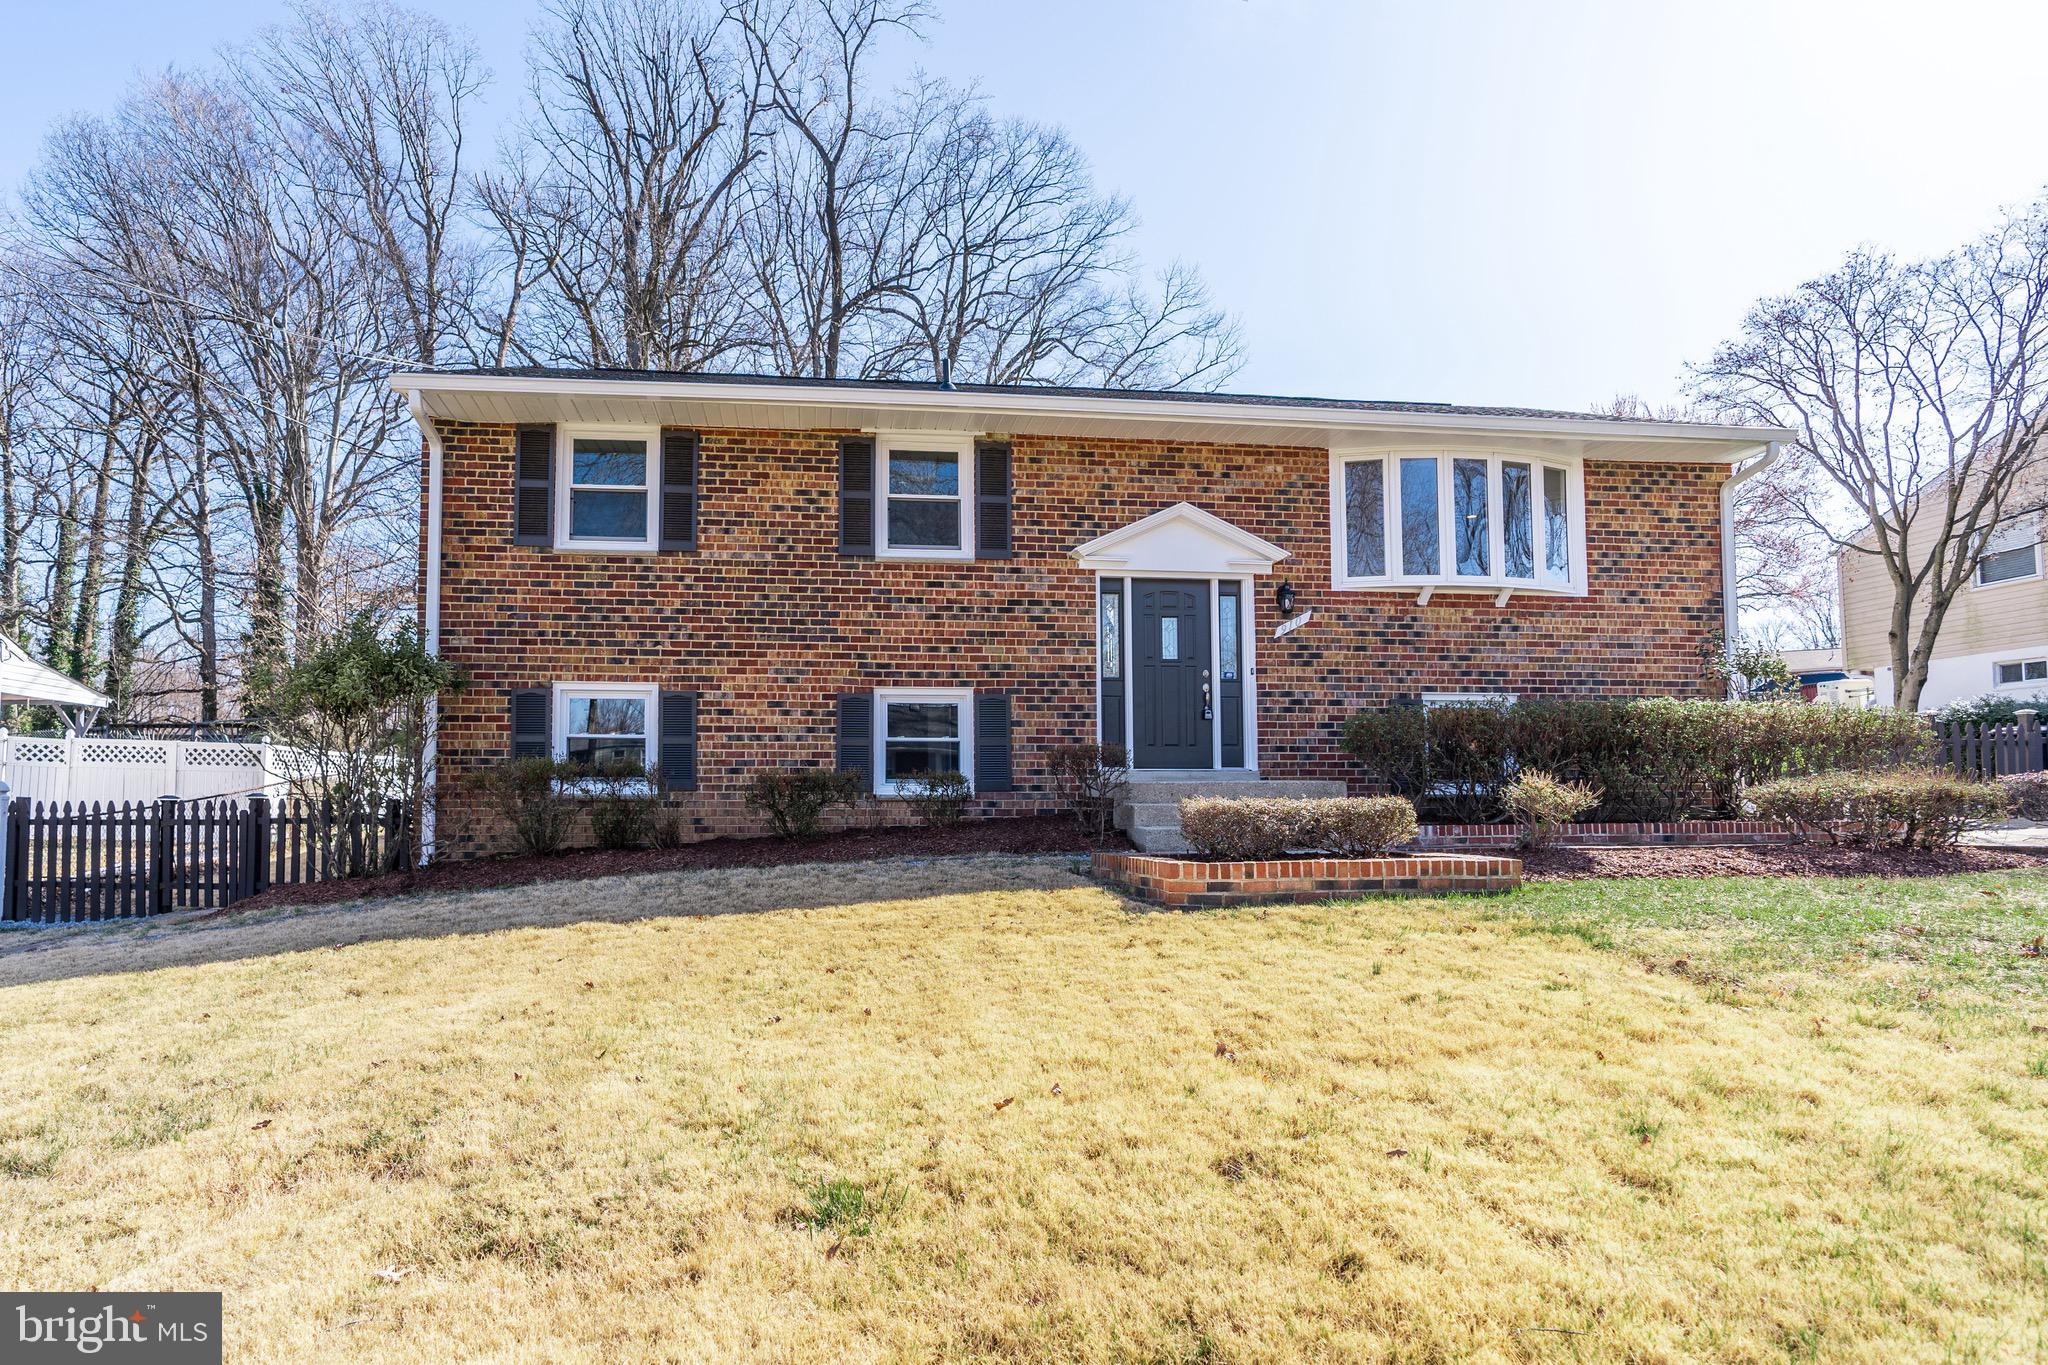 910 APPLEWOOD STREET, CAPITOL HEIGHTS, MD 20743